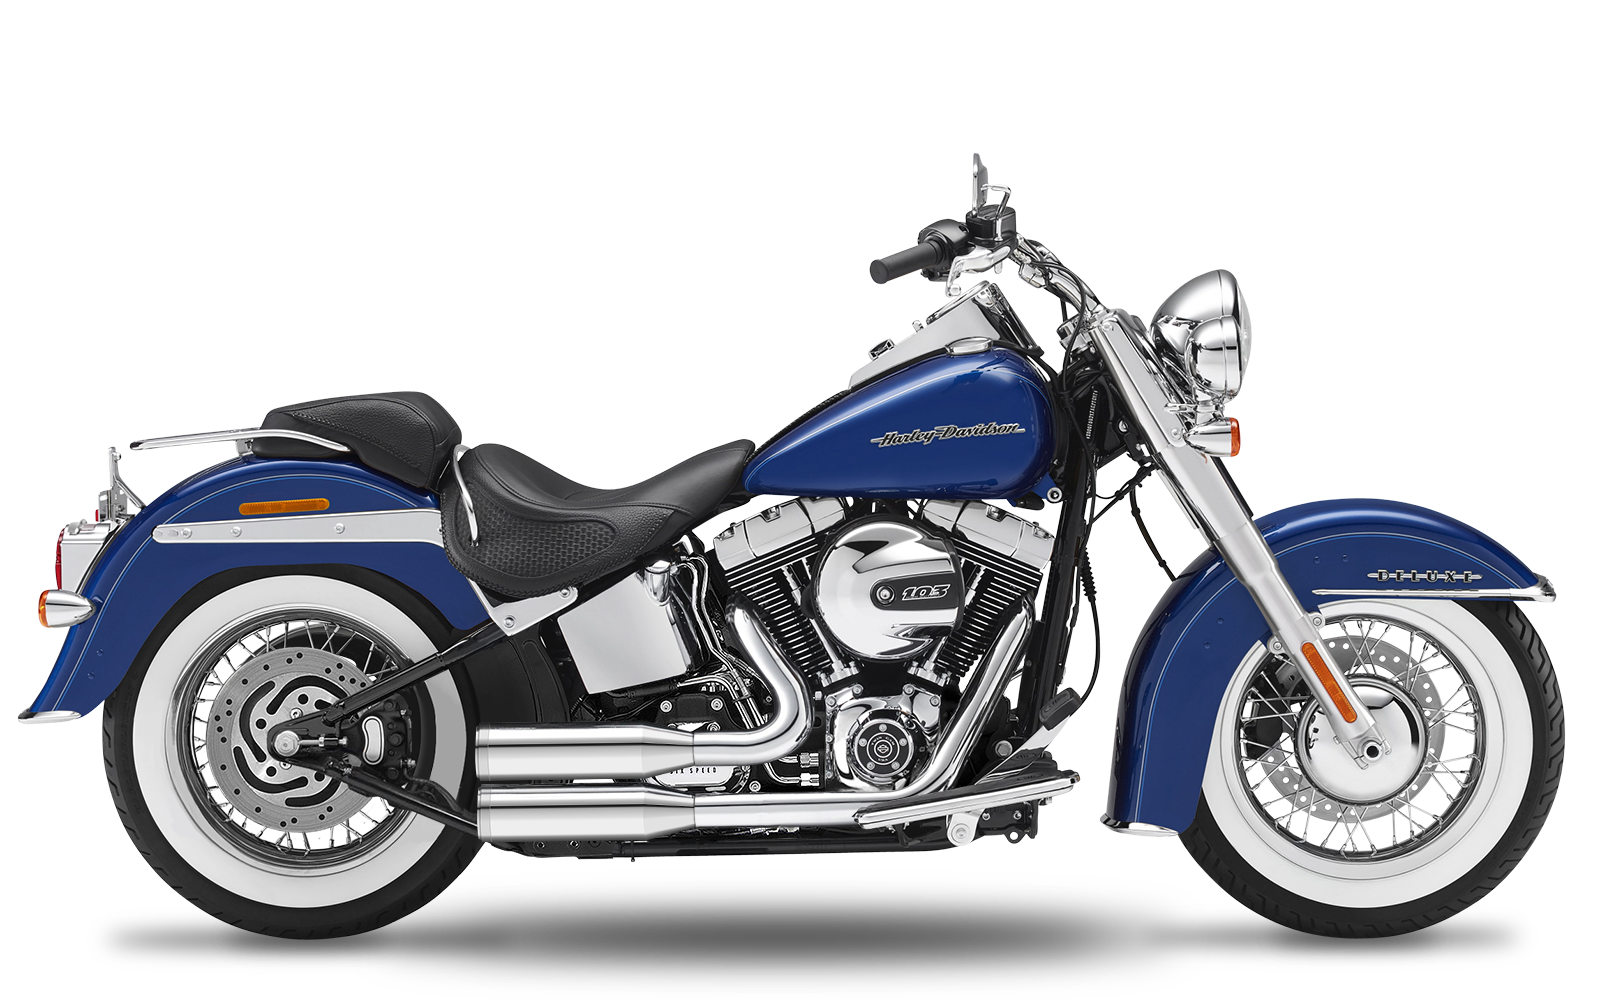 Softail - Deluxe - TC88 - 2000-2006 - Complete systems adjustable